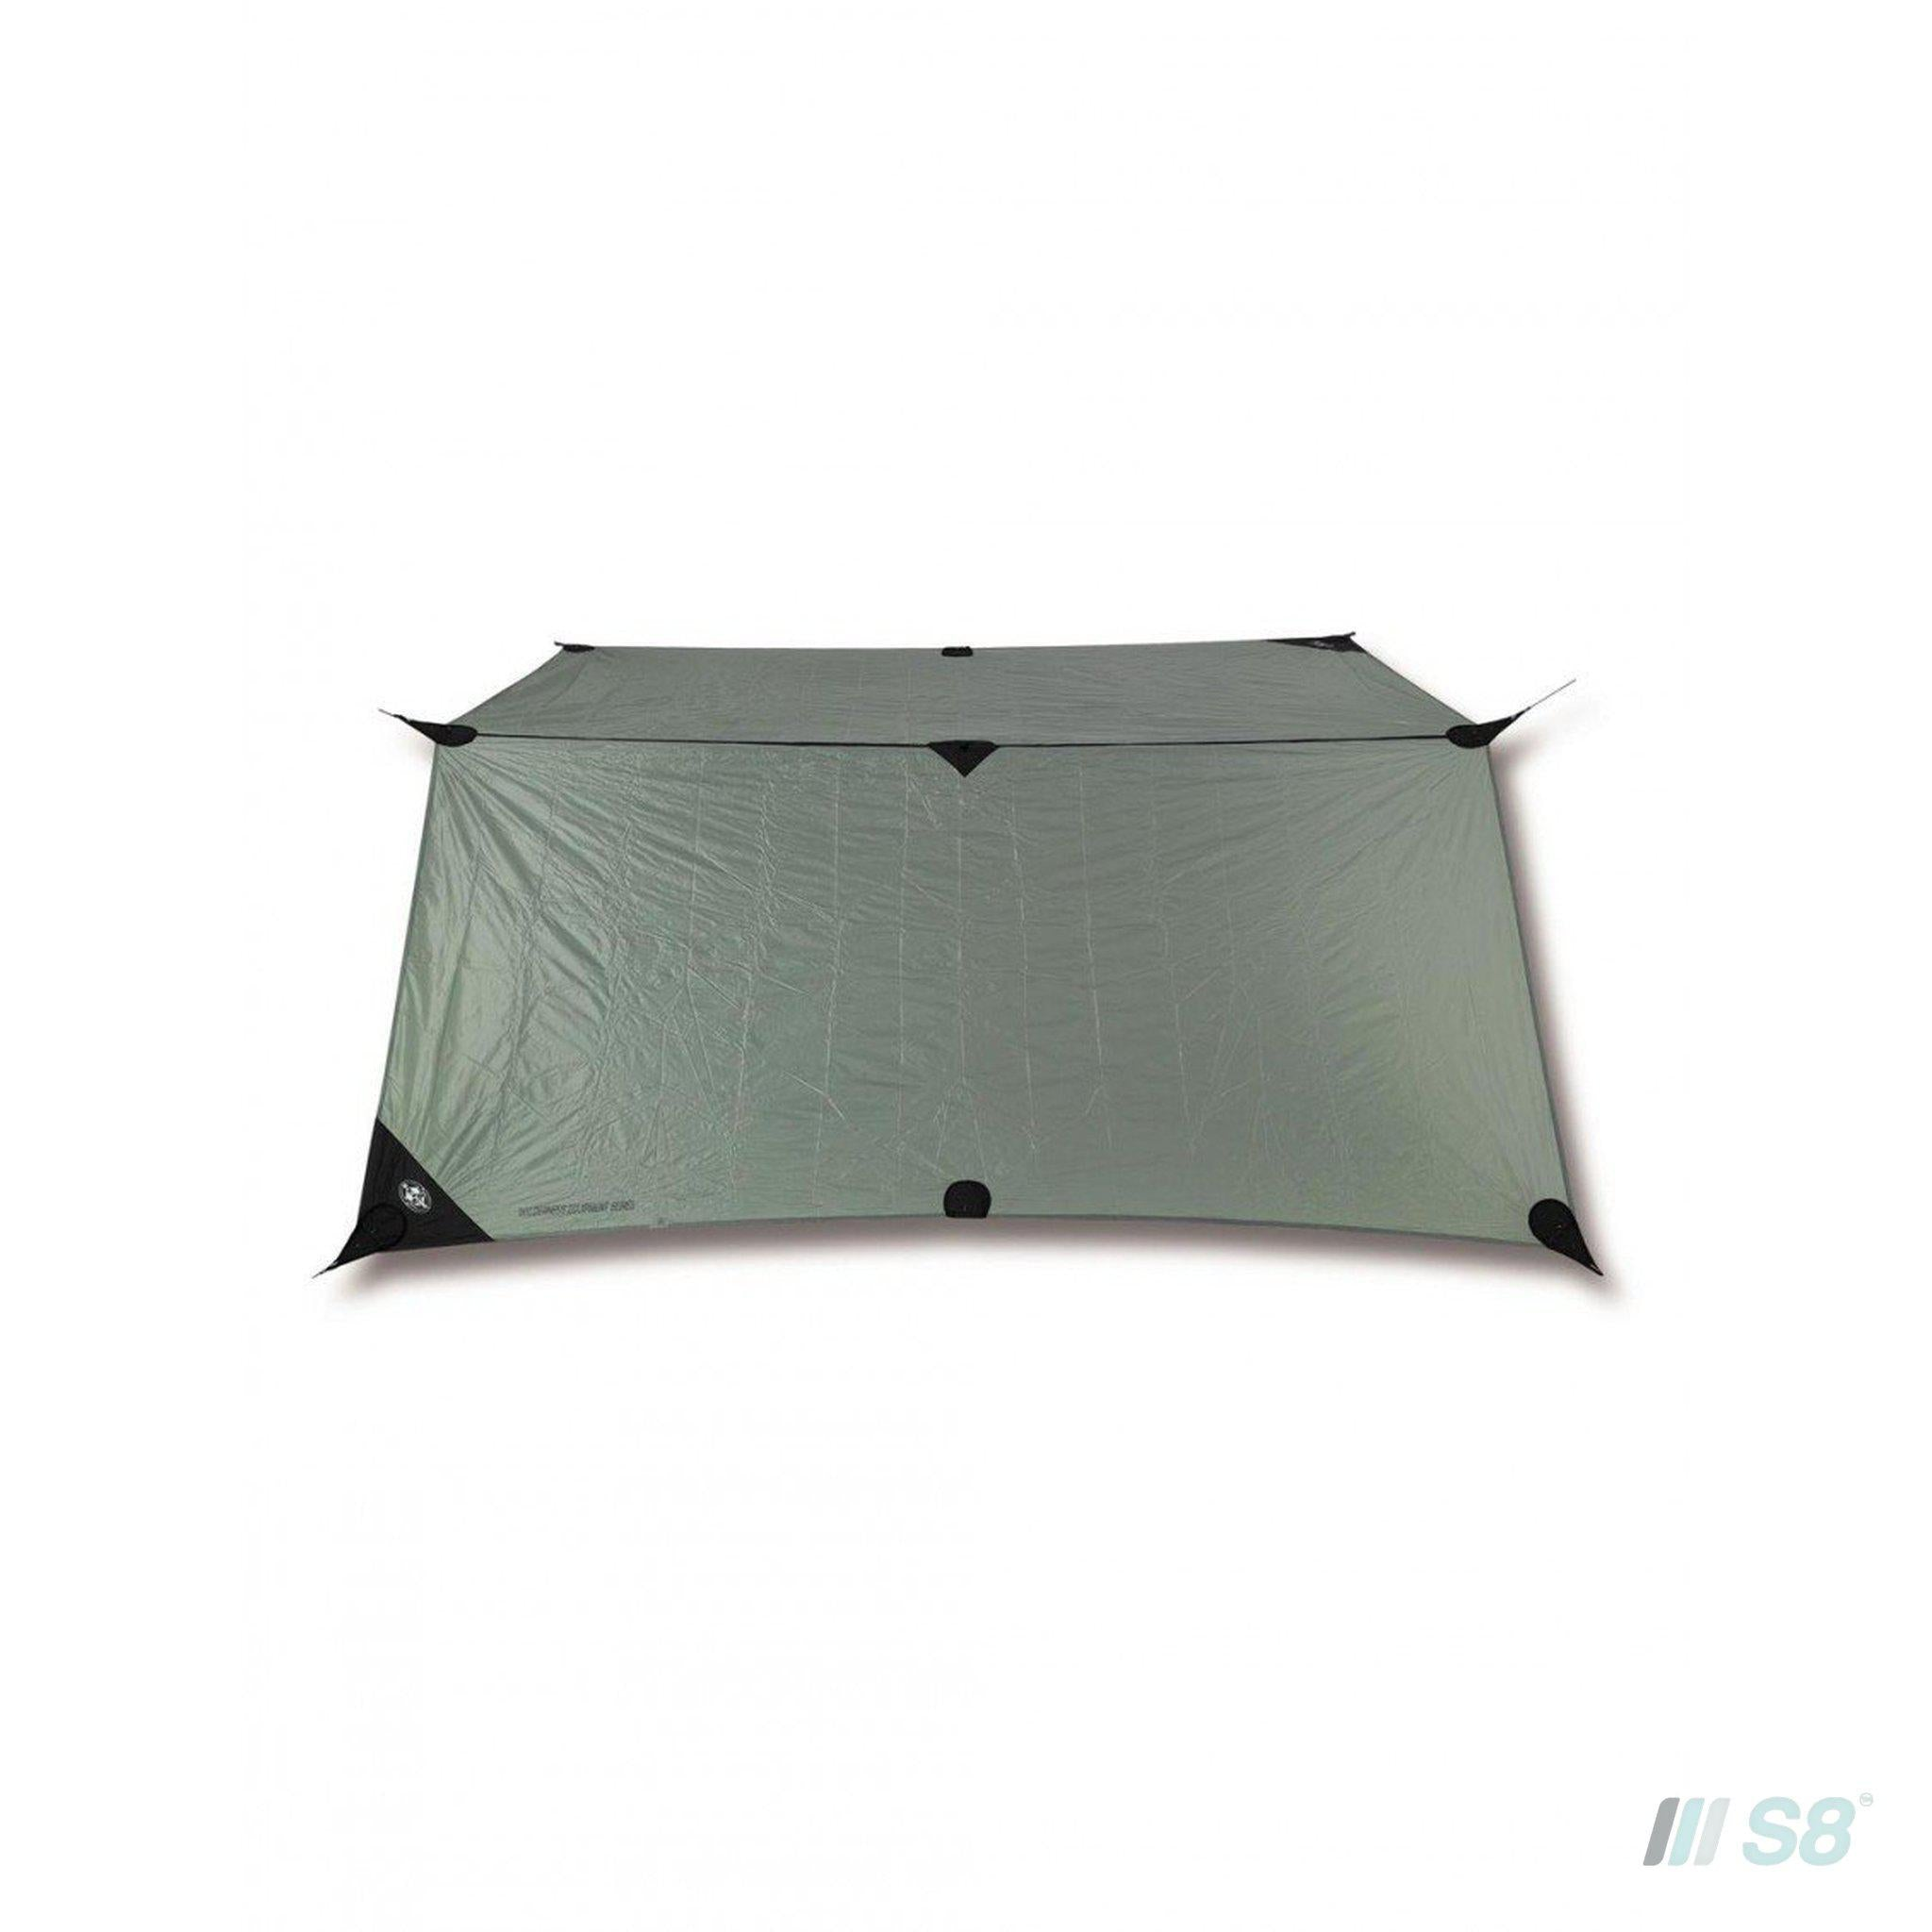 Wilderness Equipment Overhang – Standard-Wilderness Equipment-S8 Products Group